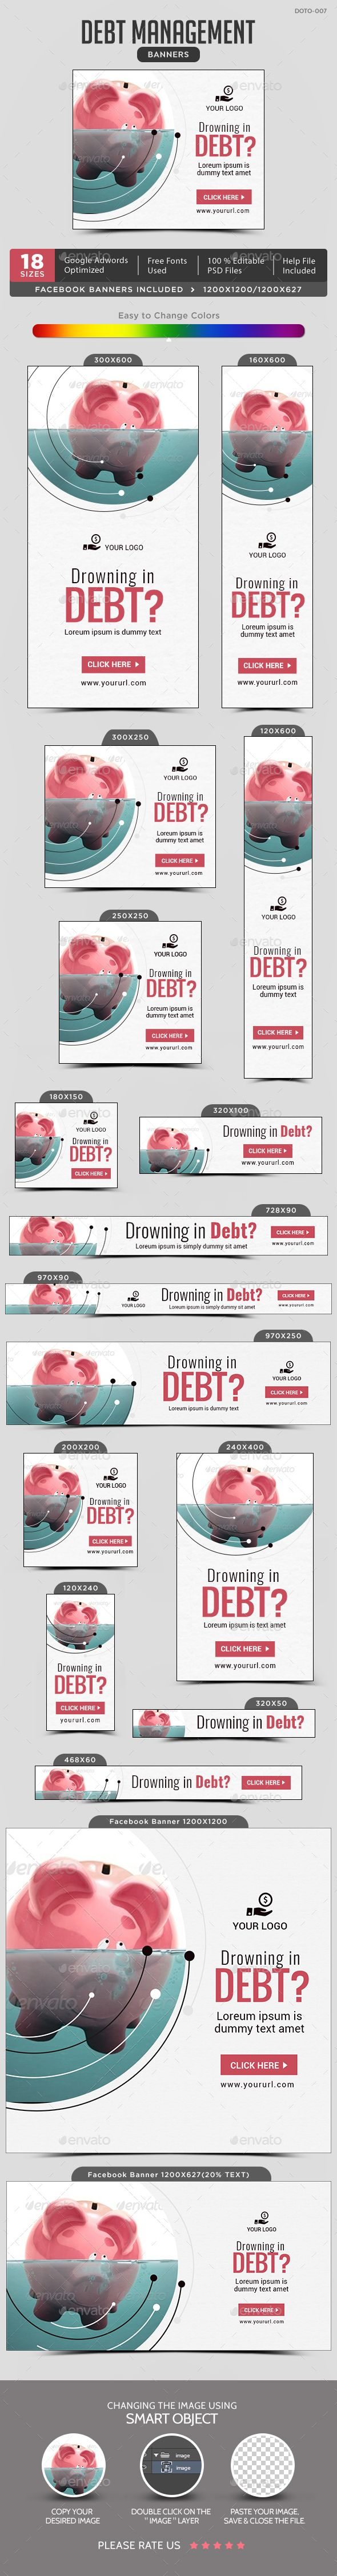 debt management banners banner pinterest banner template